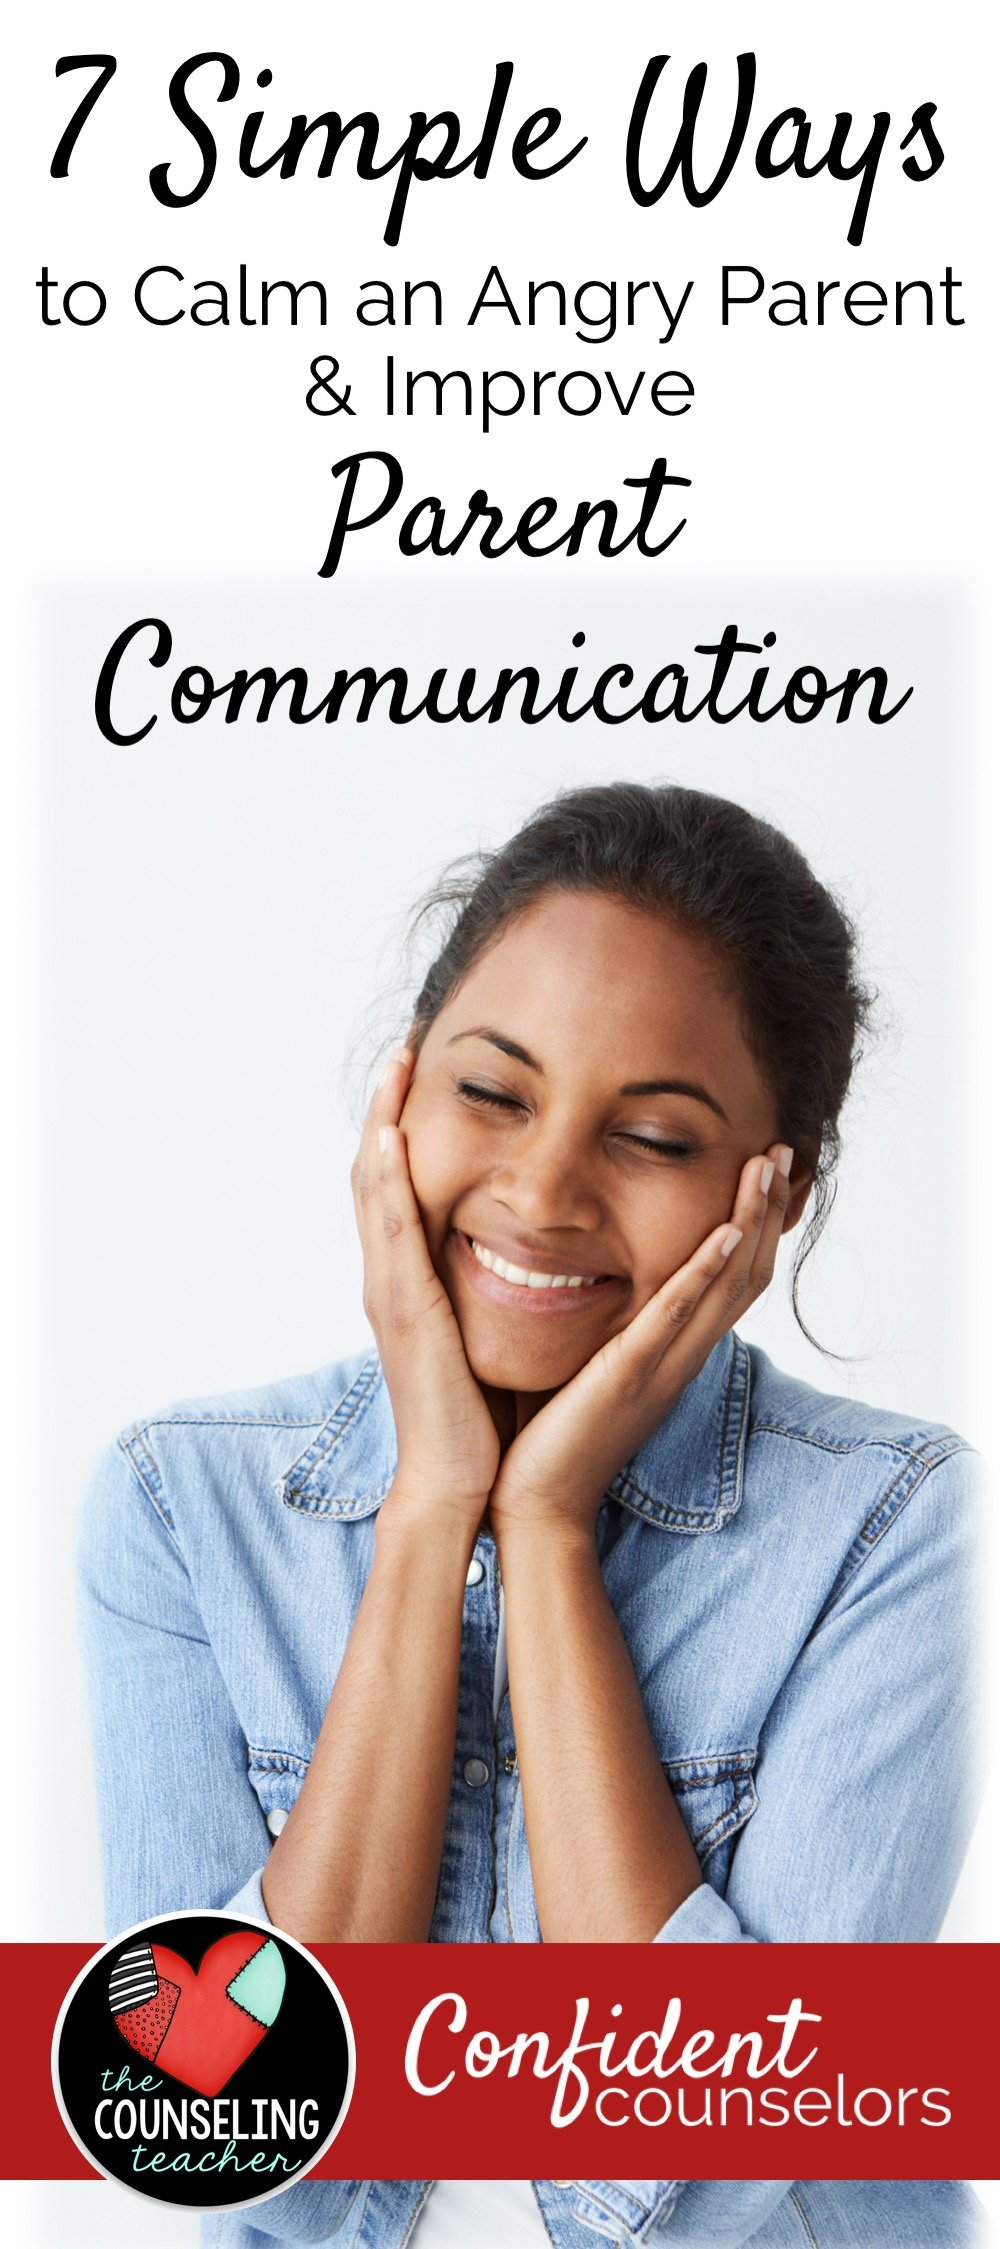 7 simple ways to calm an angry parent and improve communication. Essential strategies for school counselors.